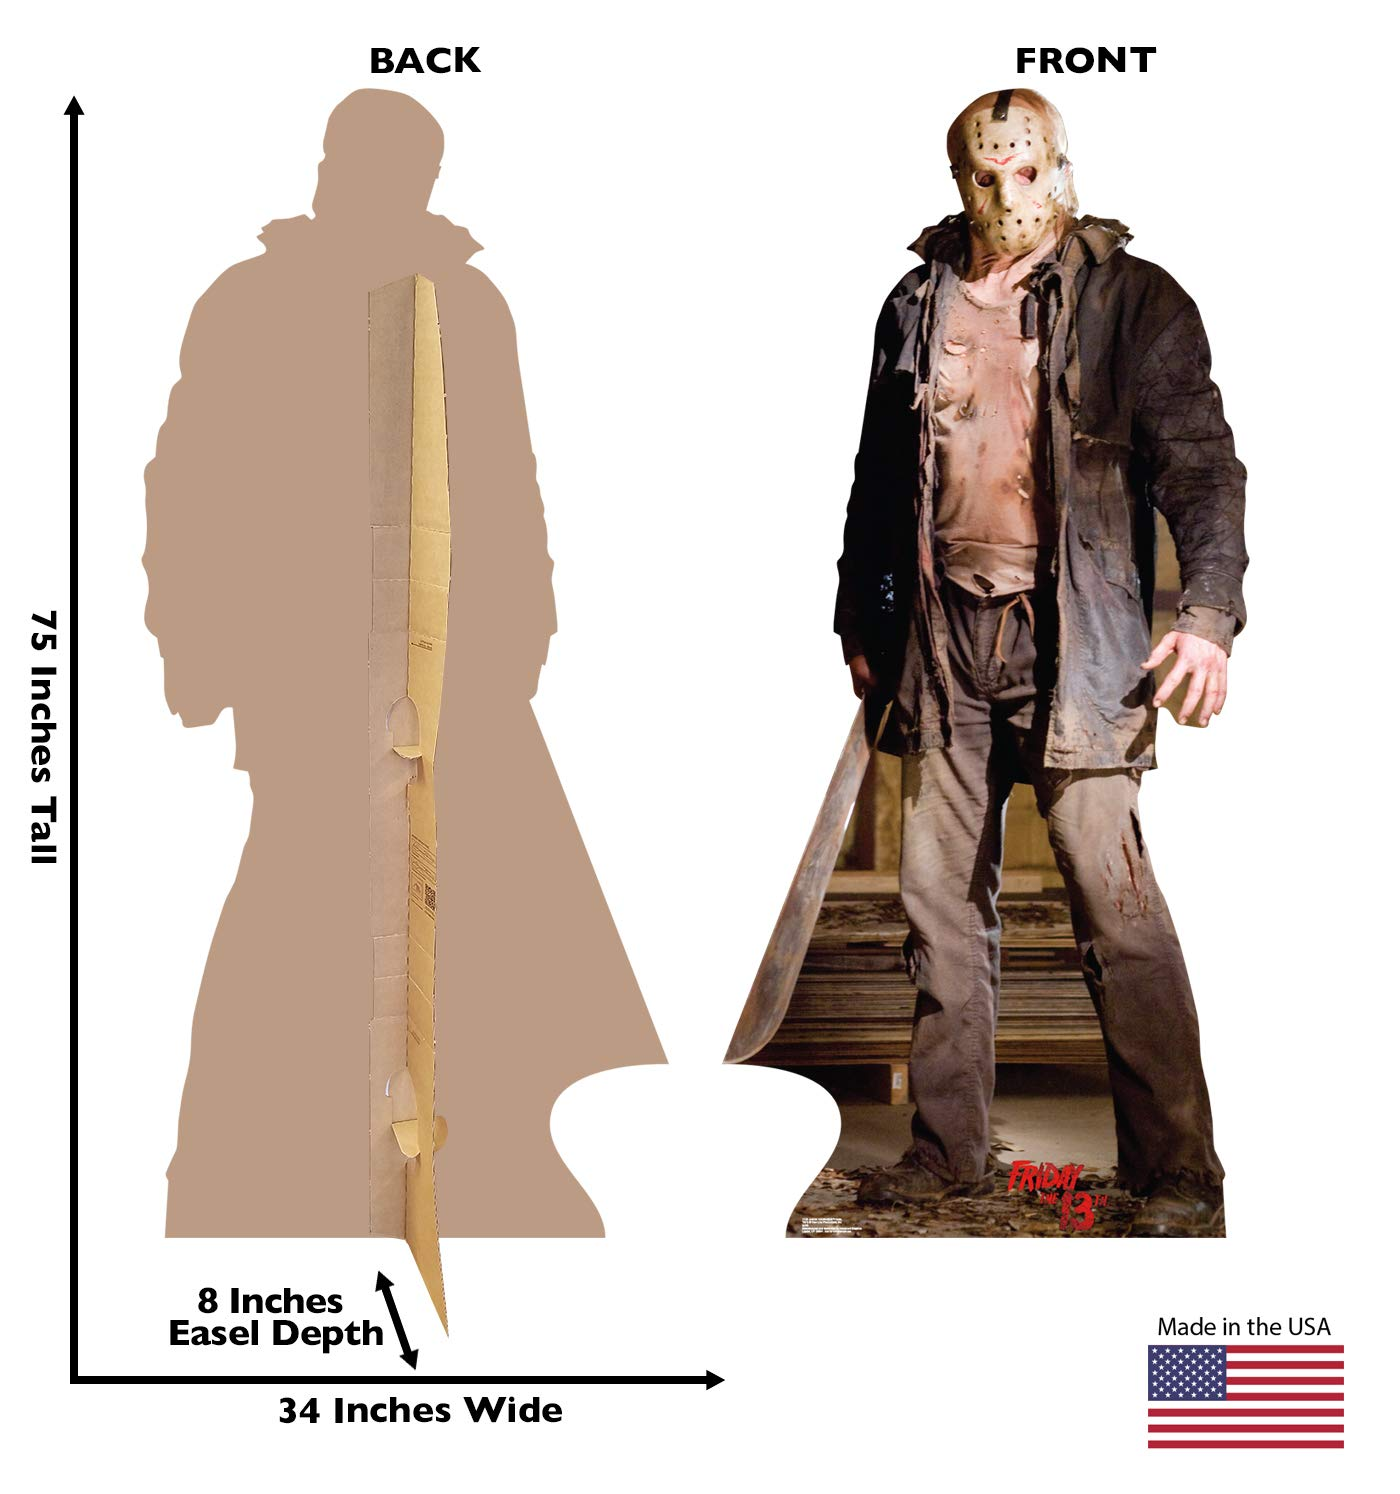 Friday the 13th 2009 Film 1724 Advanced Graphics Jason Voorhees Dark Life Size Cardboard Cutout Standup